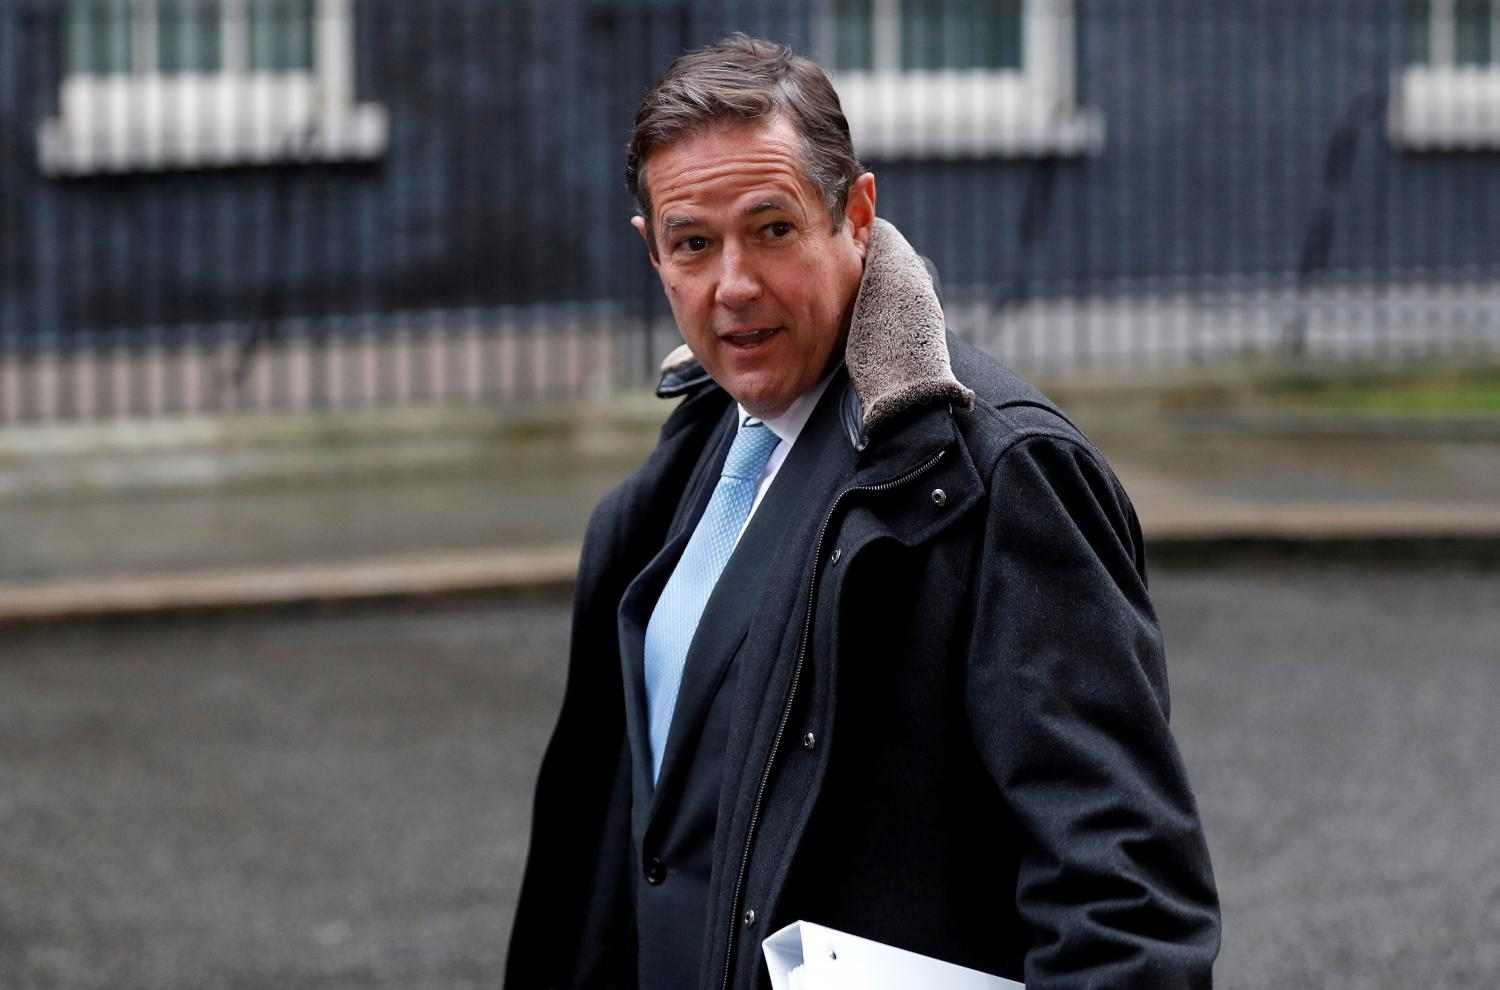 Barclays CEO under British investigation for ties to Jeffrey Epstein